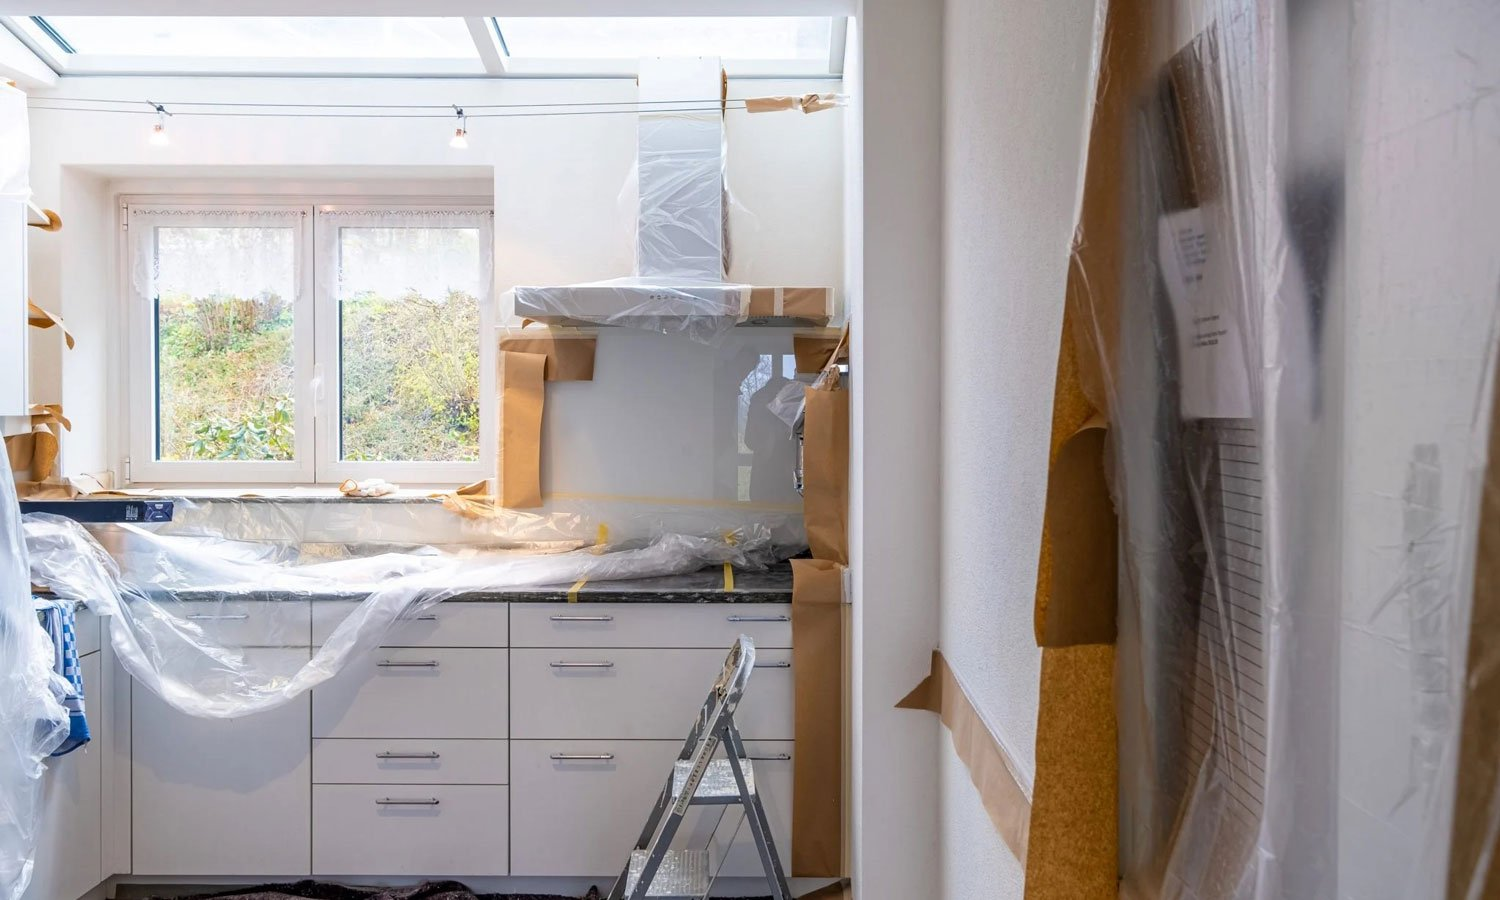 A freshly renovated kitchen with slick new cupboards and new applianes.